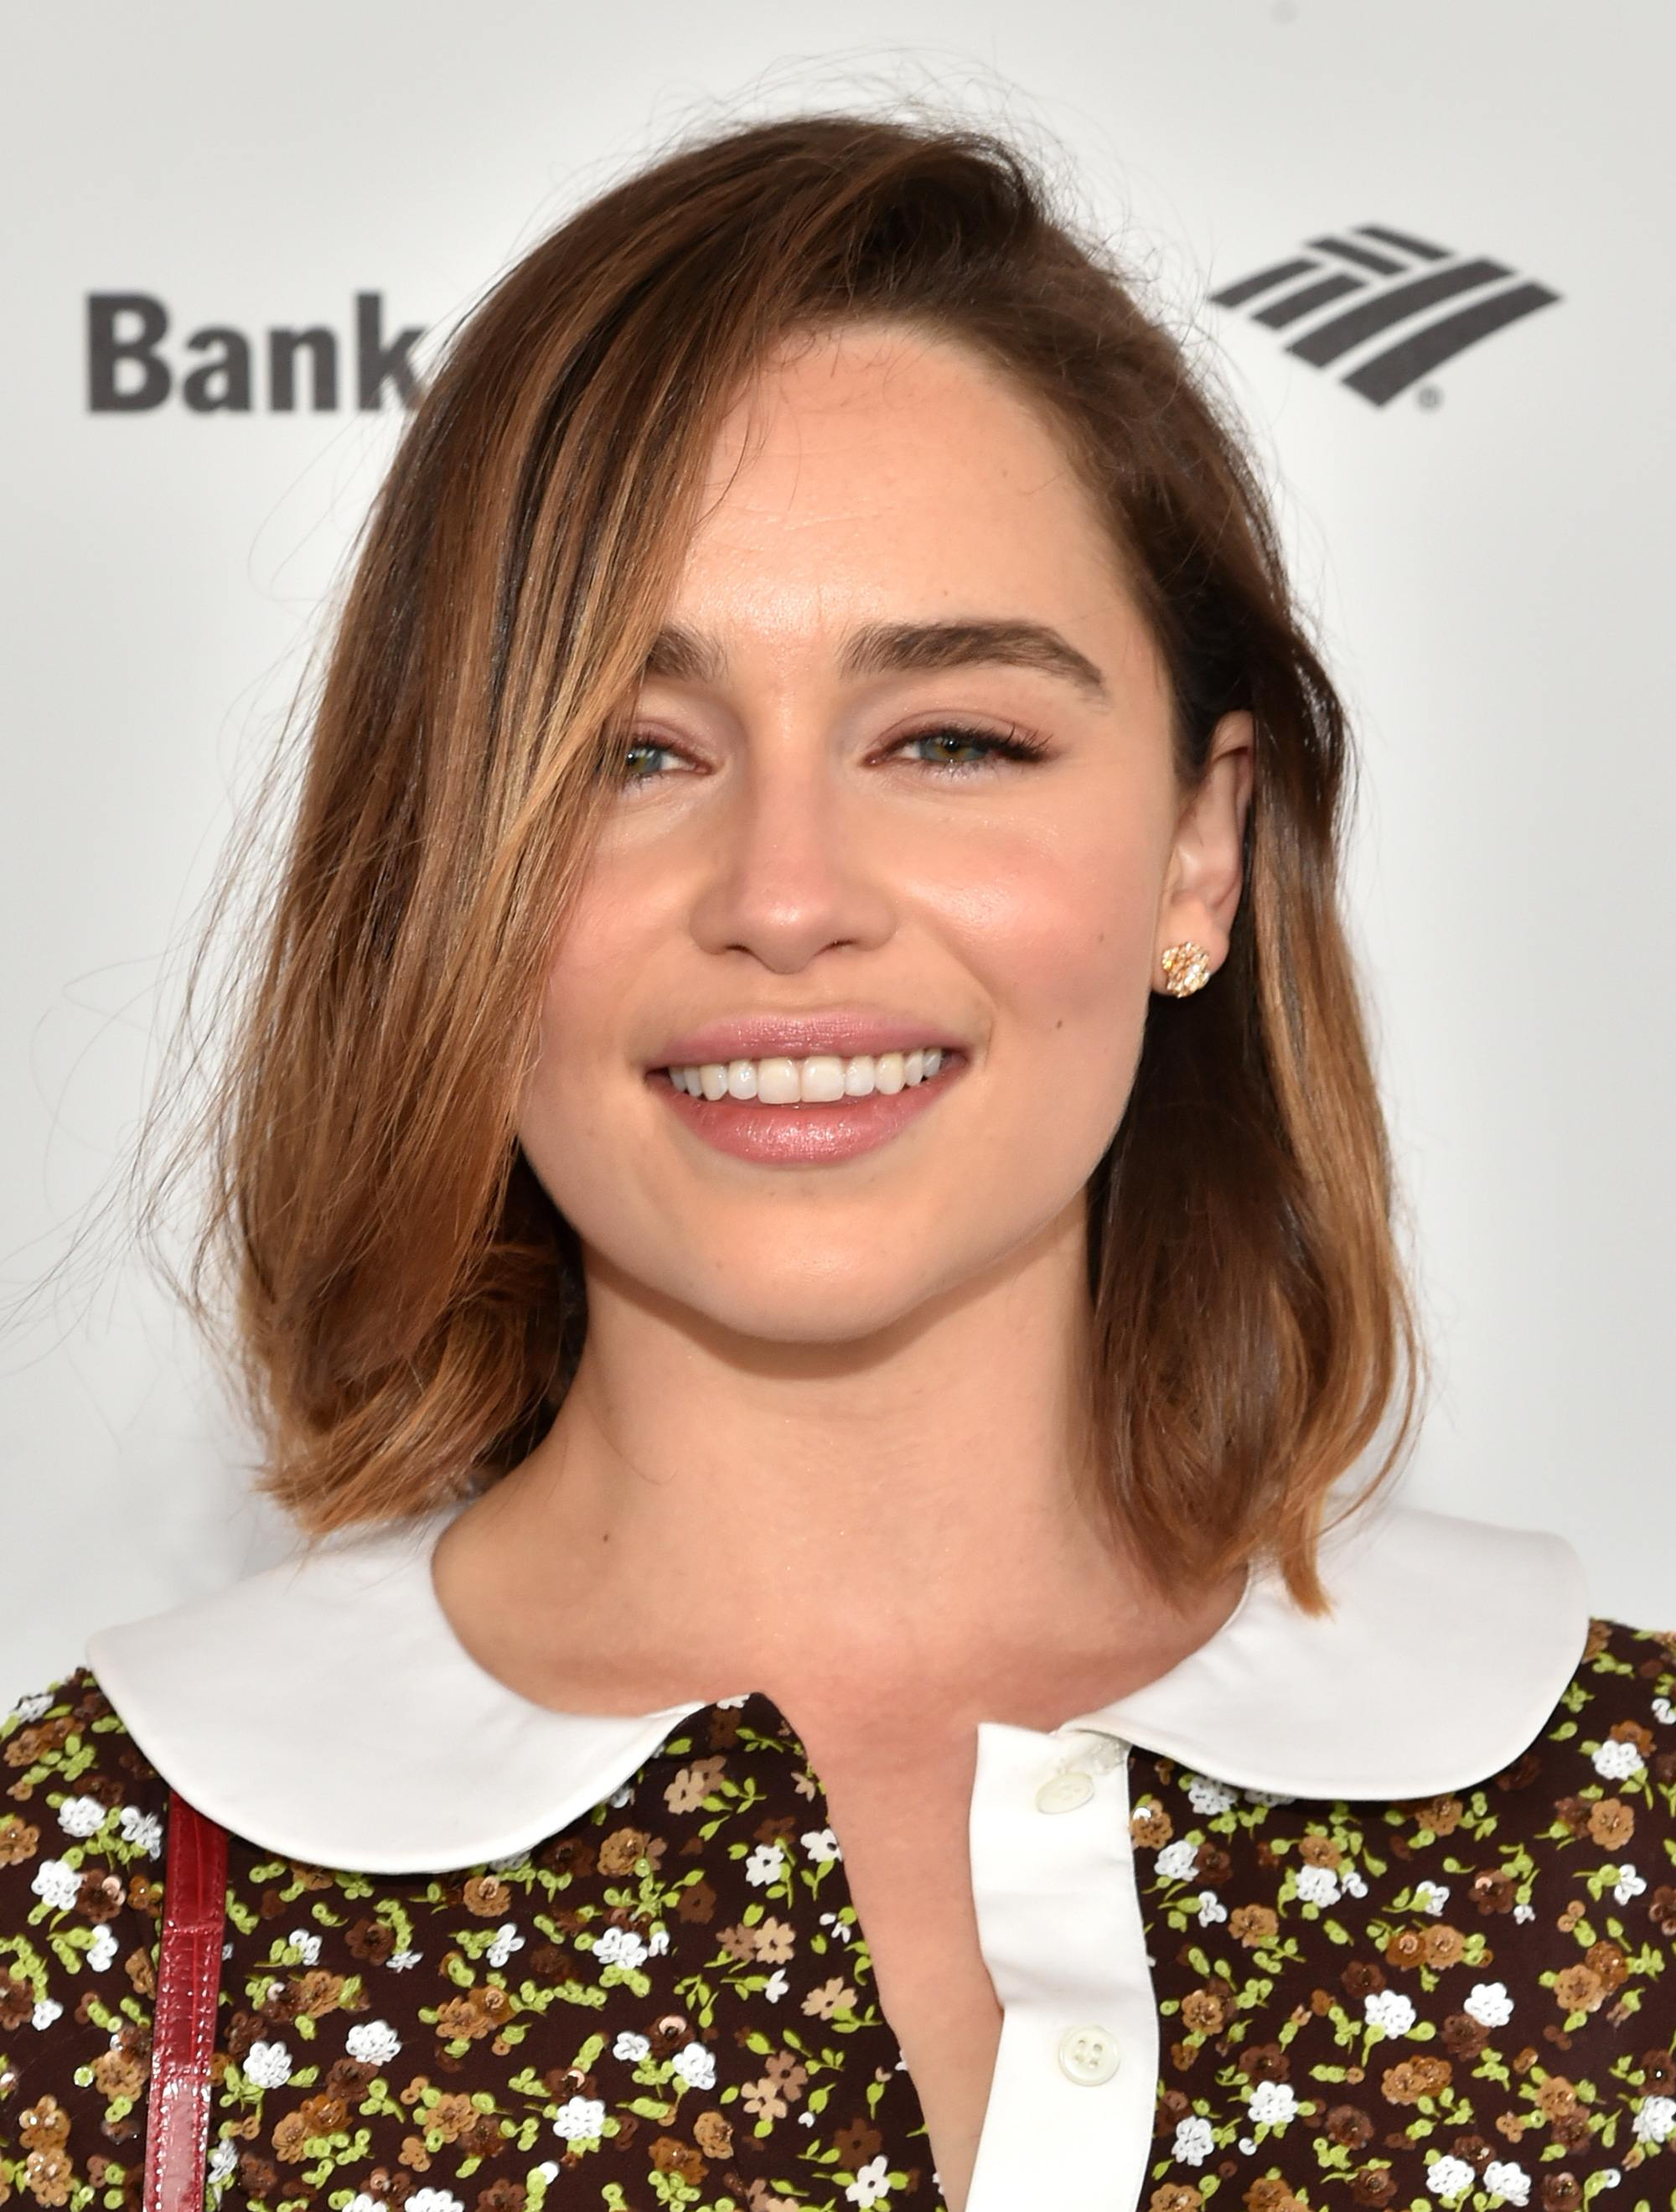 Shoulder length layered hair: Emilia Clarke with brunette mid-length light brown balayage hair worn in a side parting